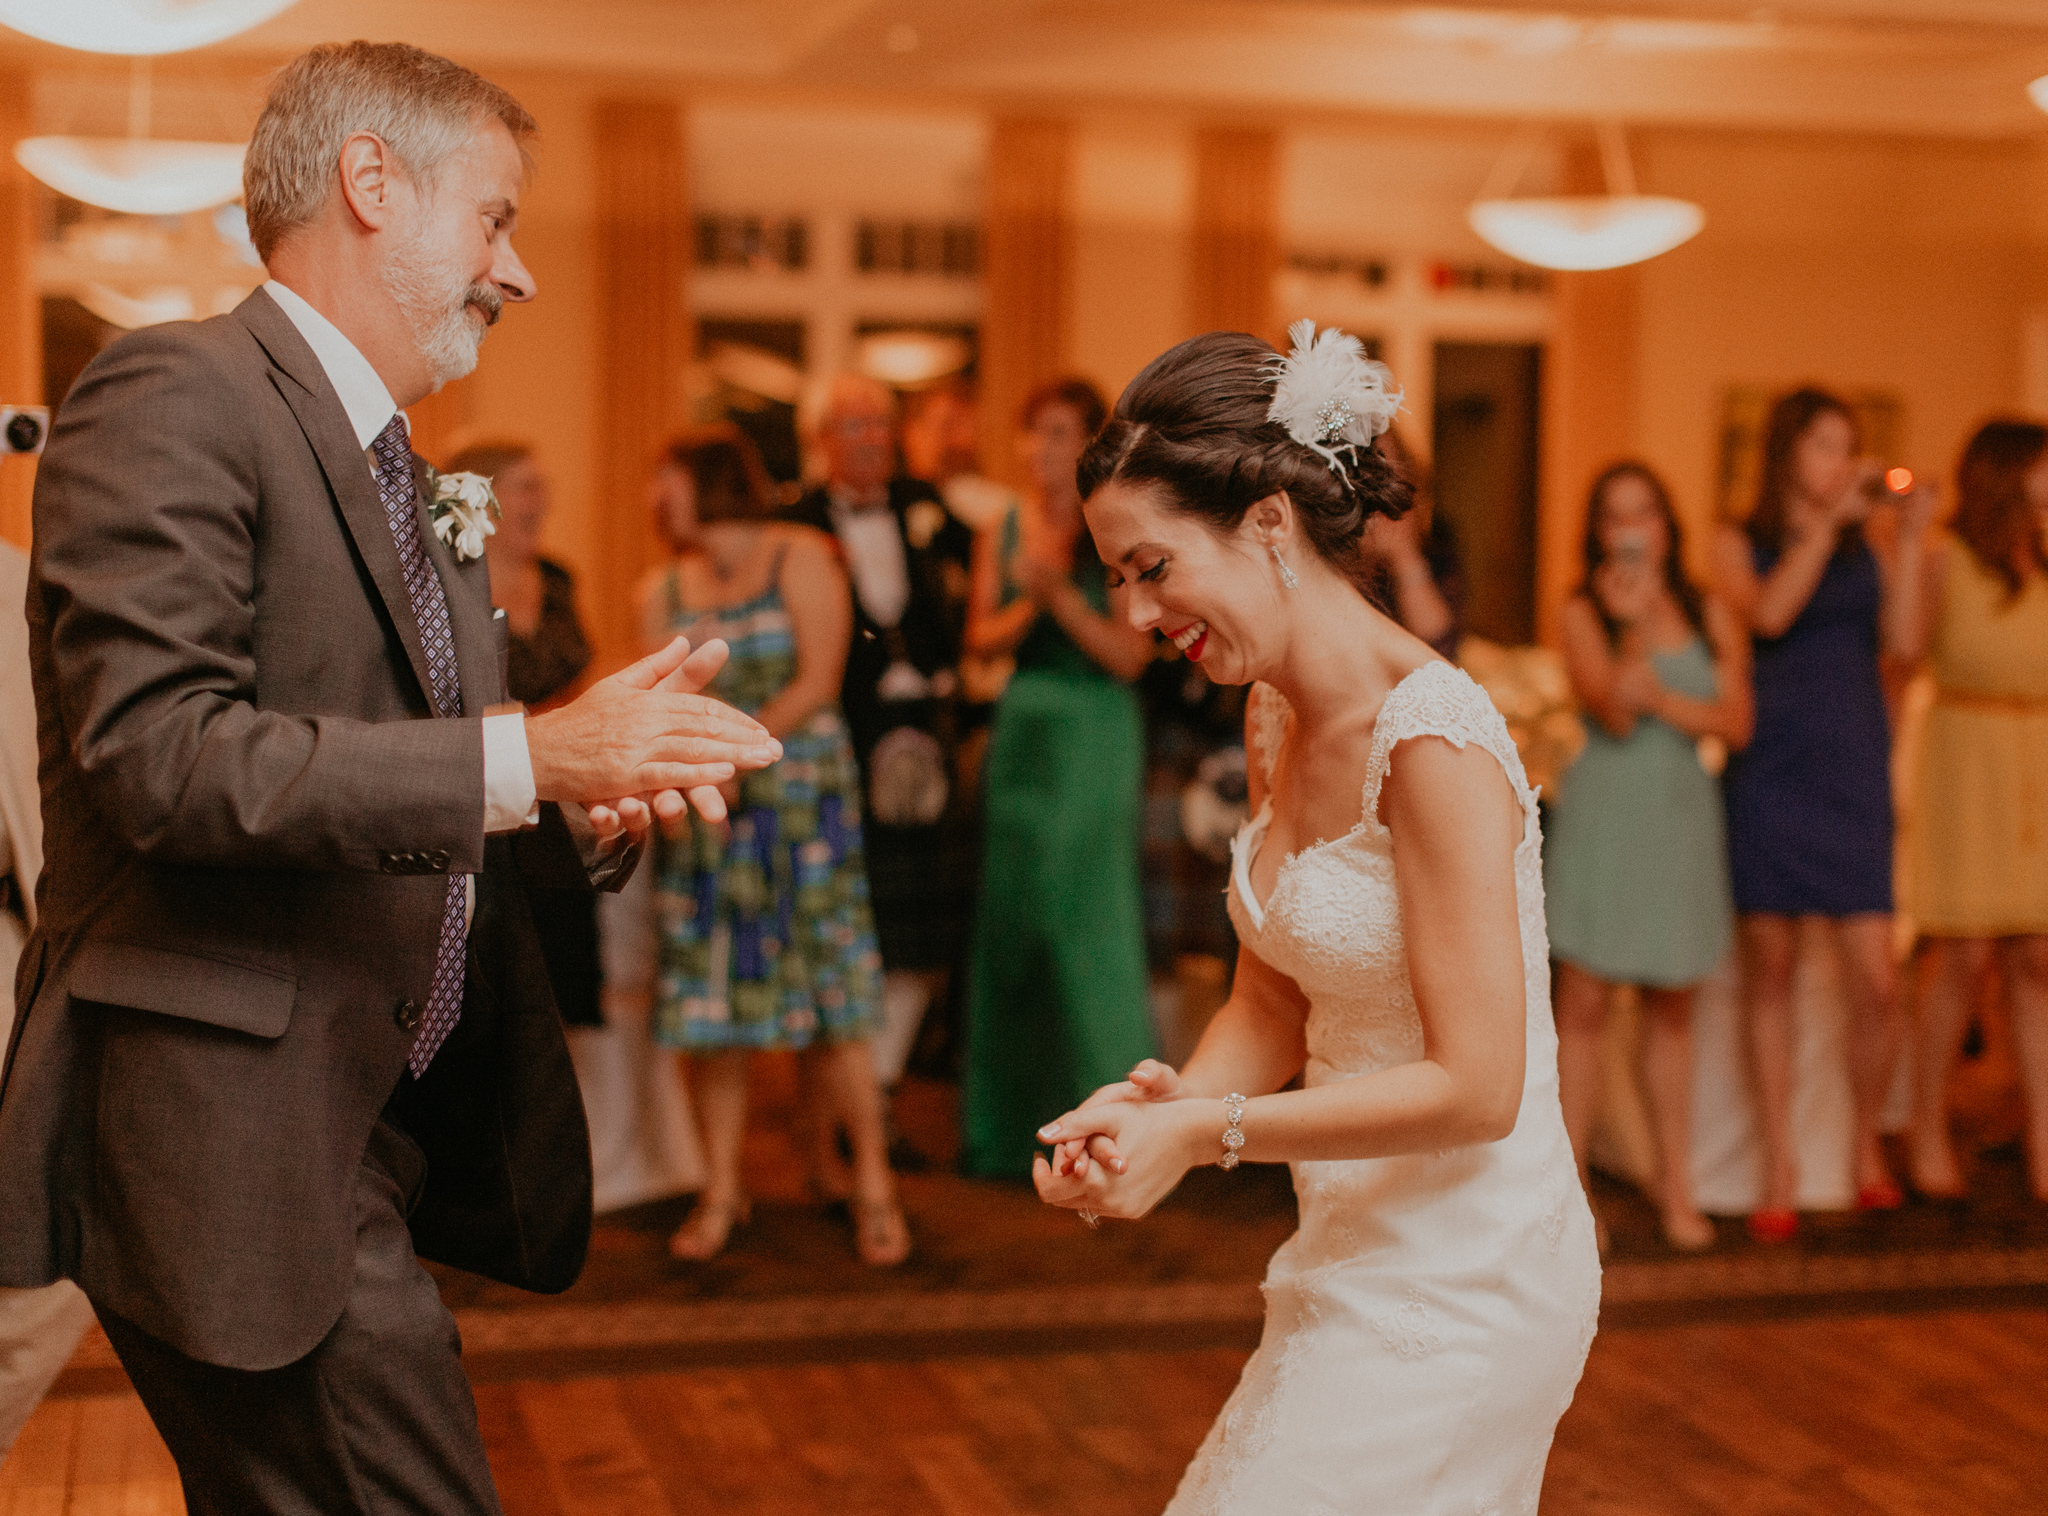 Bride smiles and has fun dancing with father during wedding